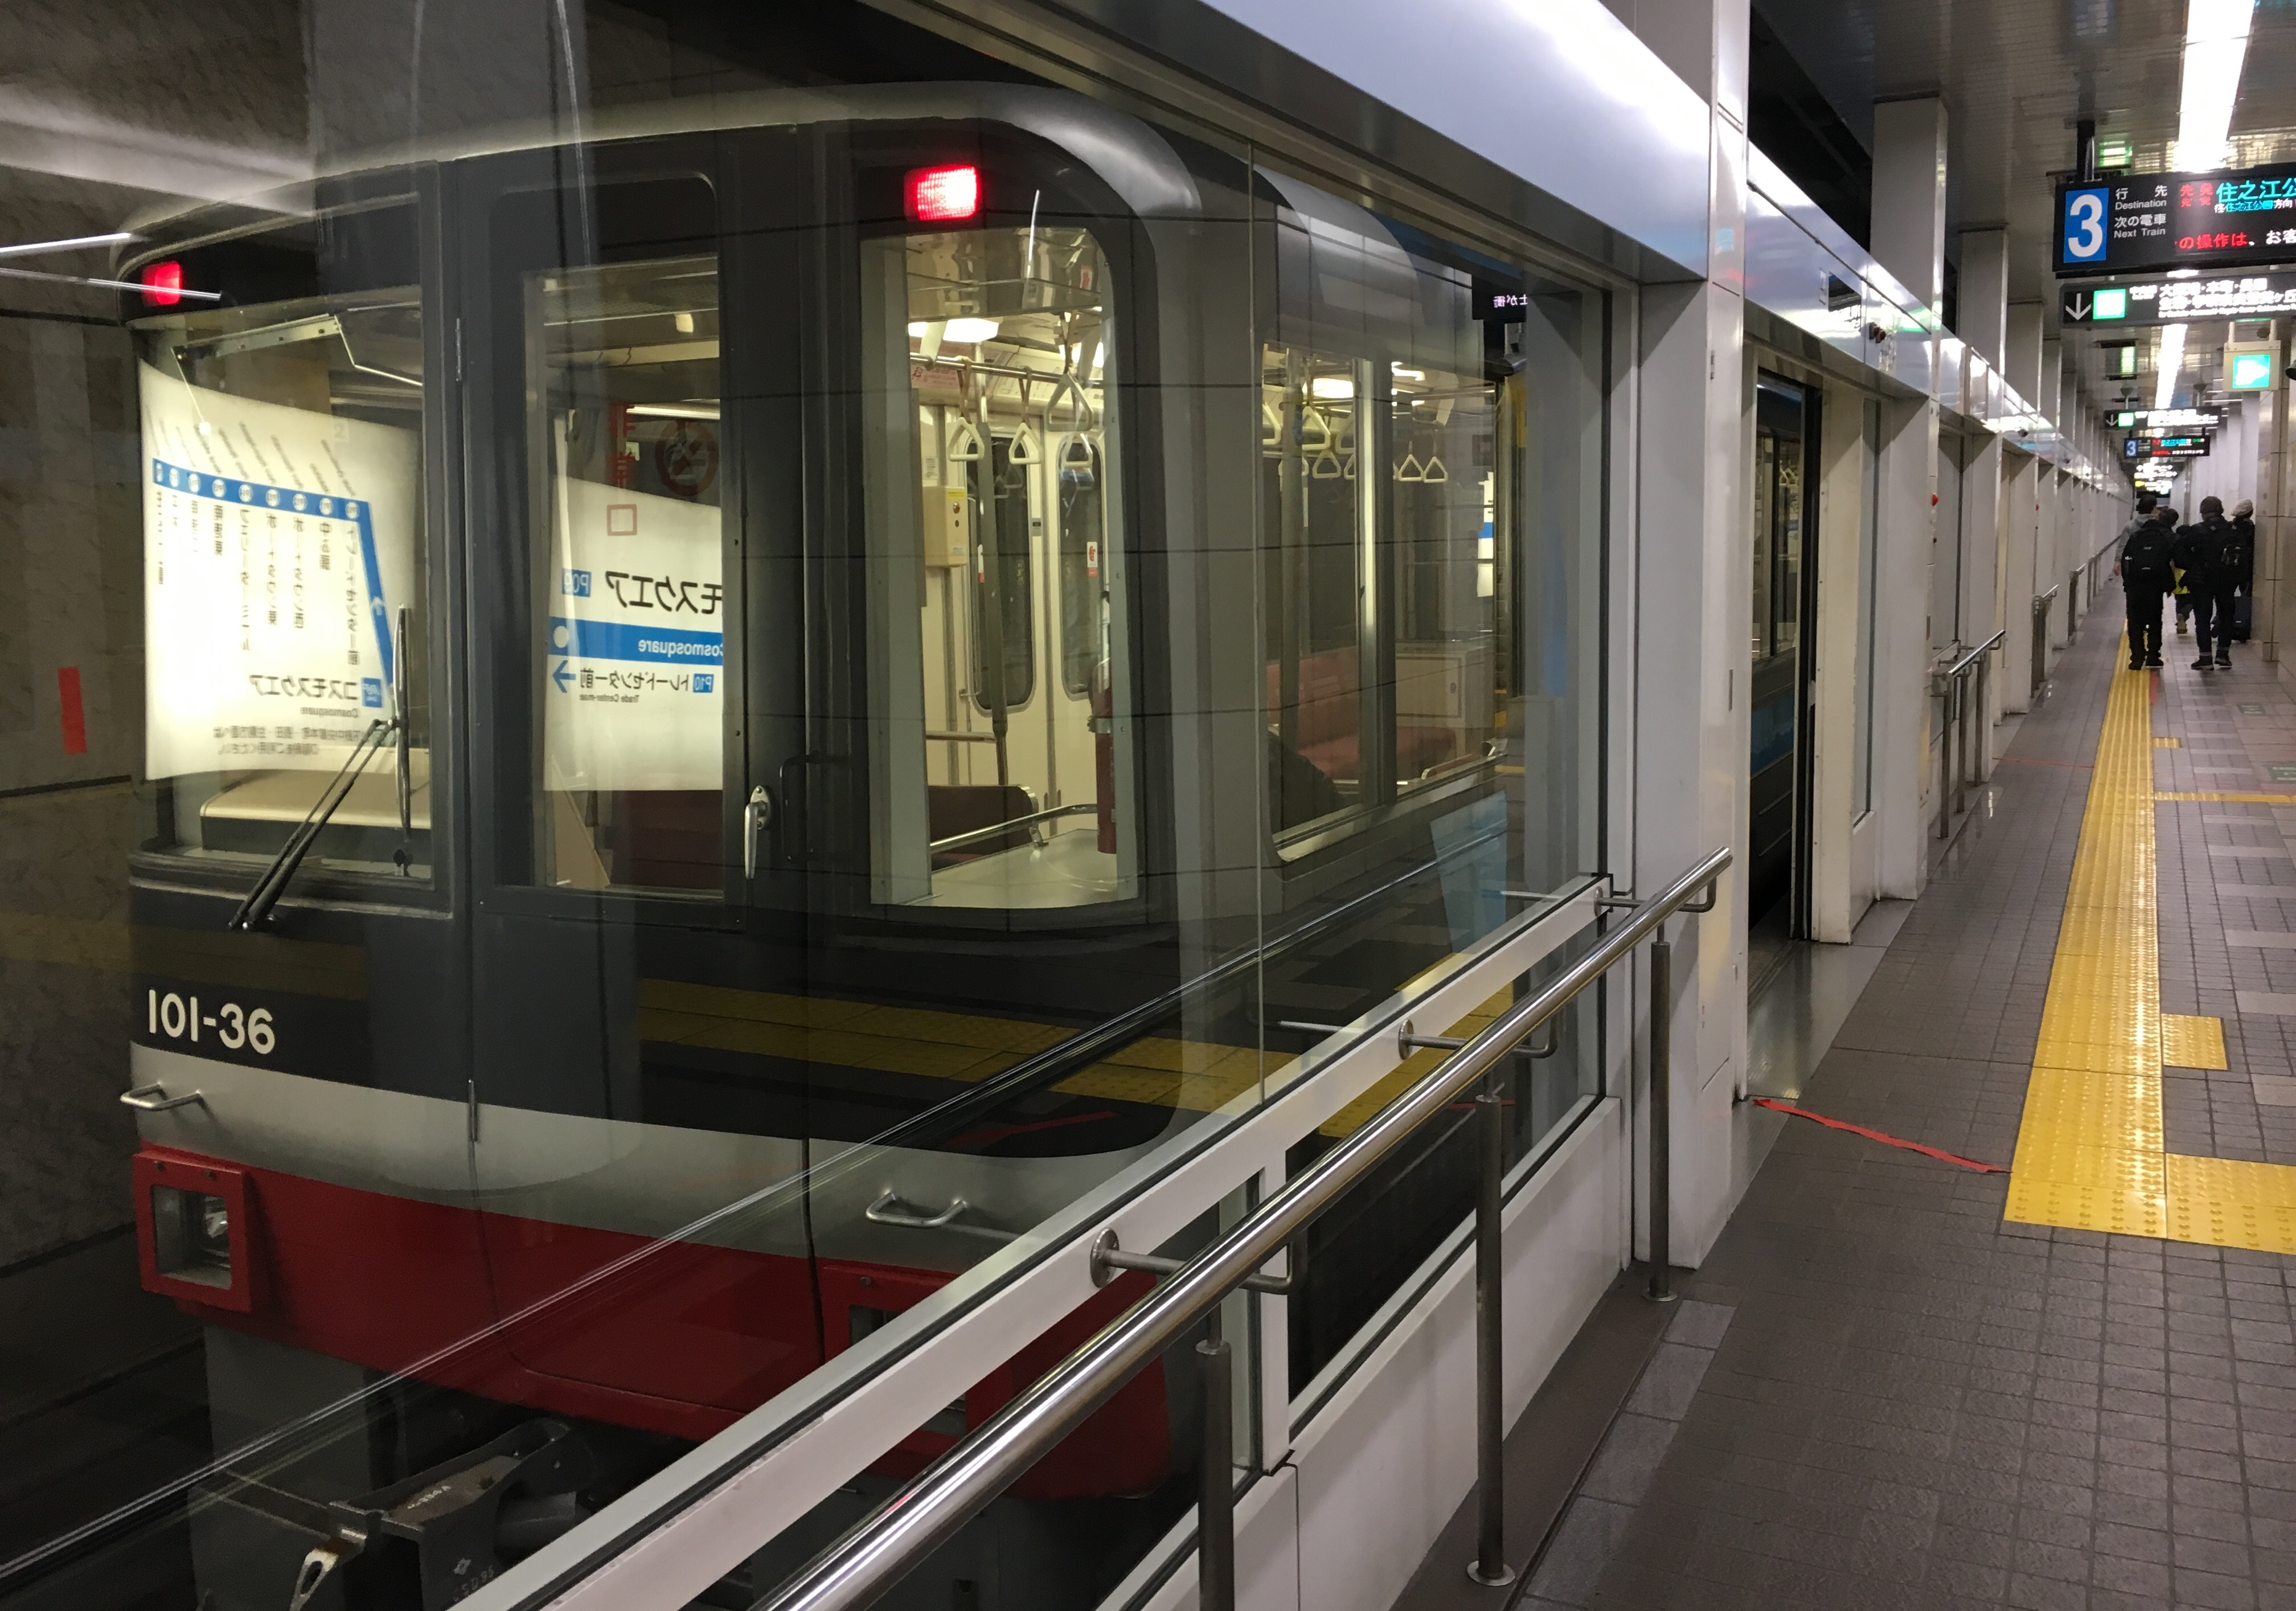 new tram subway train about to depart from station